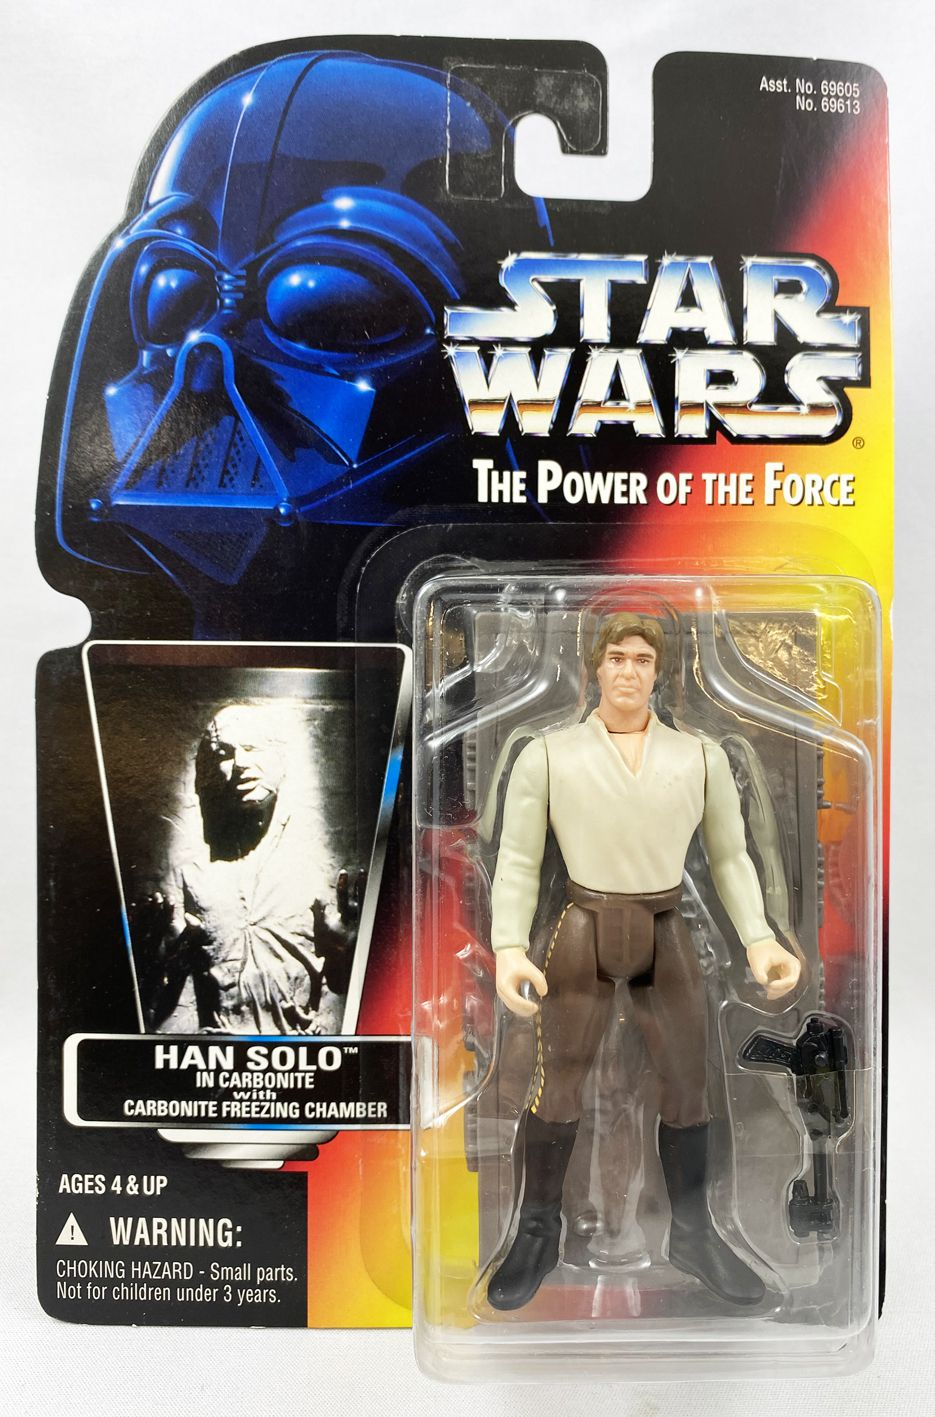 Star Wars (The Power of the Force) - Kenner - Han Solo in Carbonite